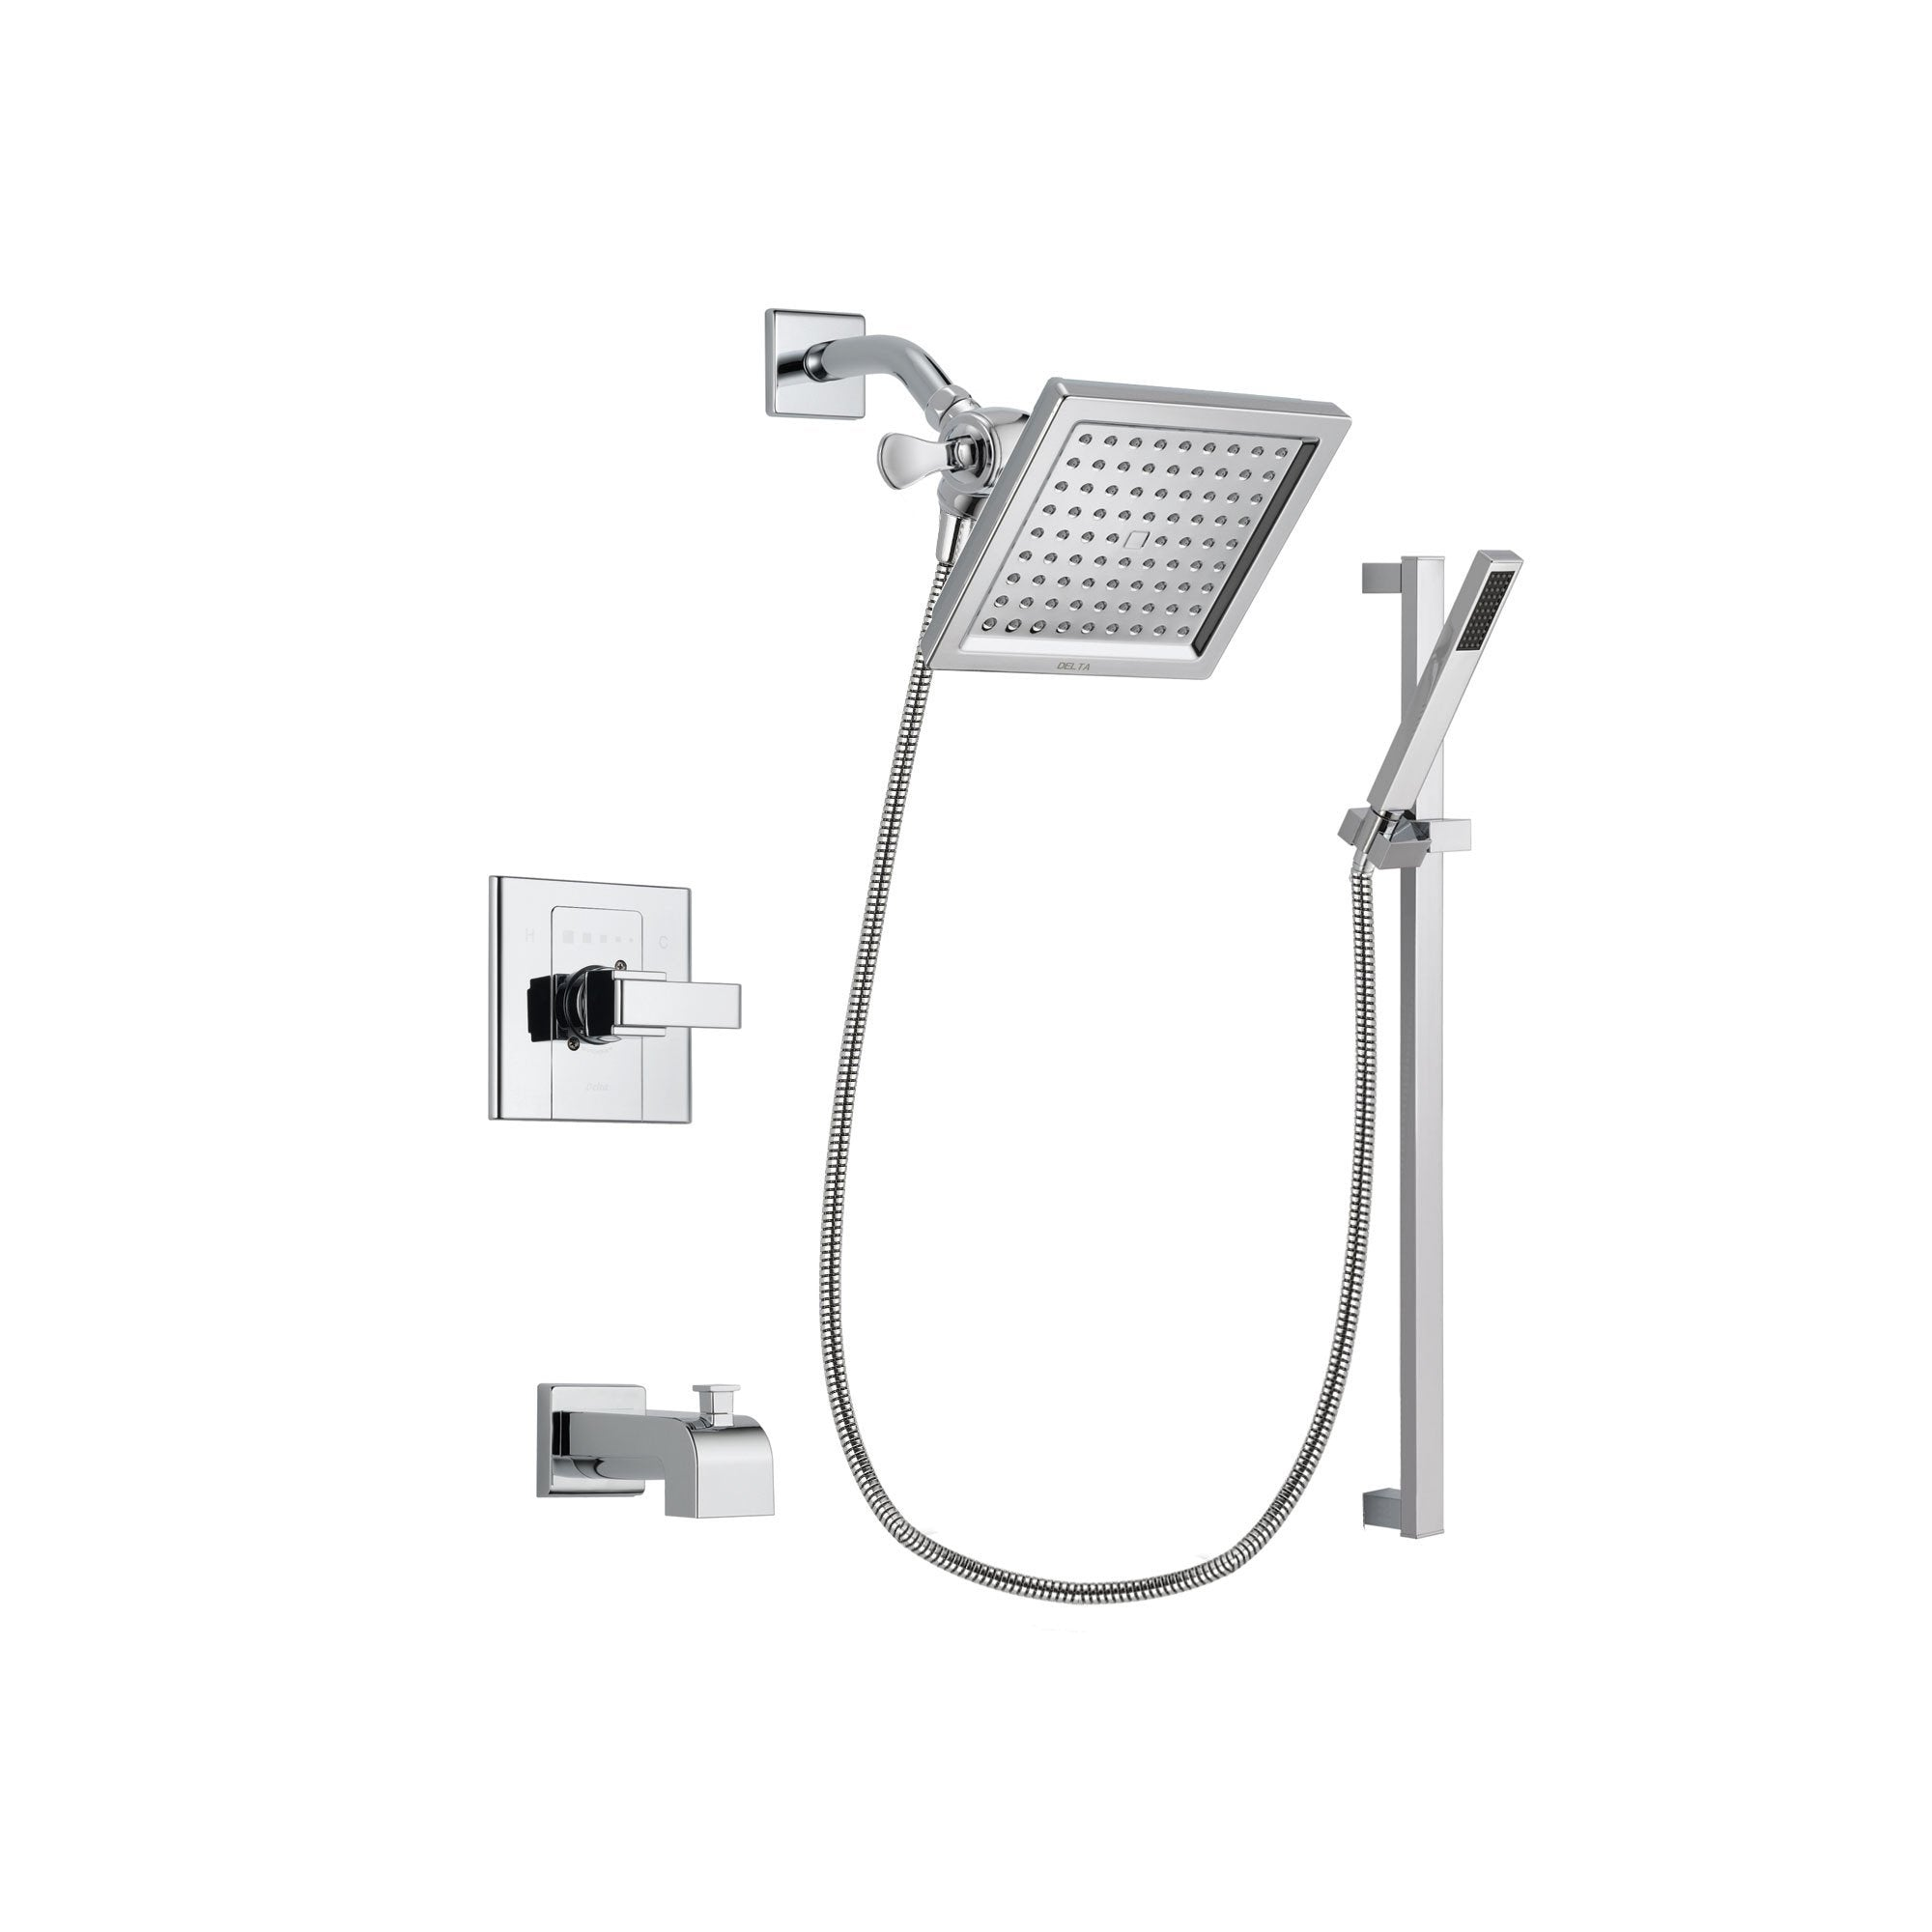 Delta Arzo Chrome Finish Tub and Shower Faucet System Package with 6.5-inch Square Rain Showerhead and Modern Square Wall Mount Slide Bar with Handheld Shower Spray Includes Rough-in Valve and Tub Spout DSP0219V